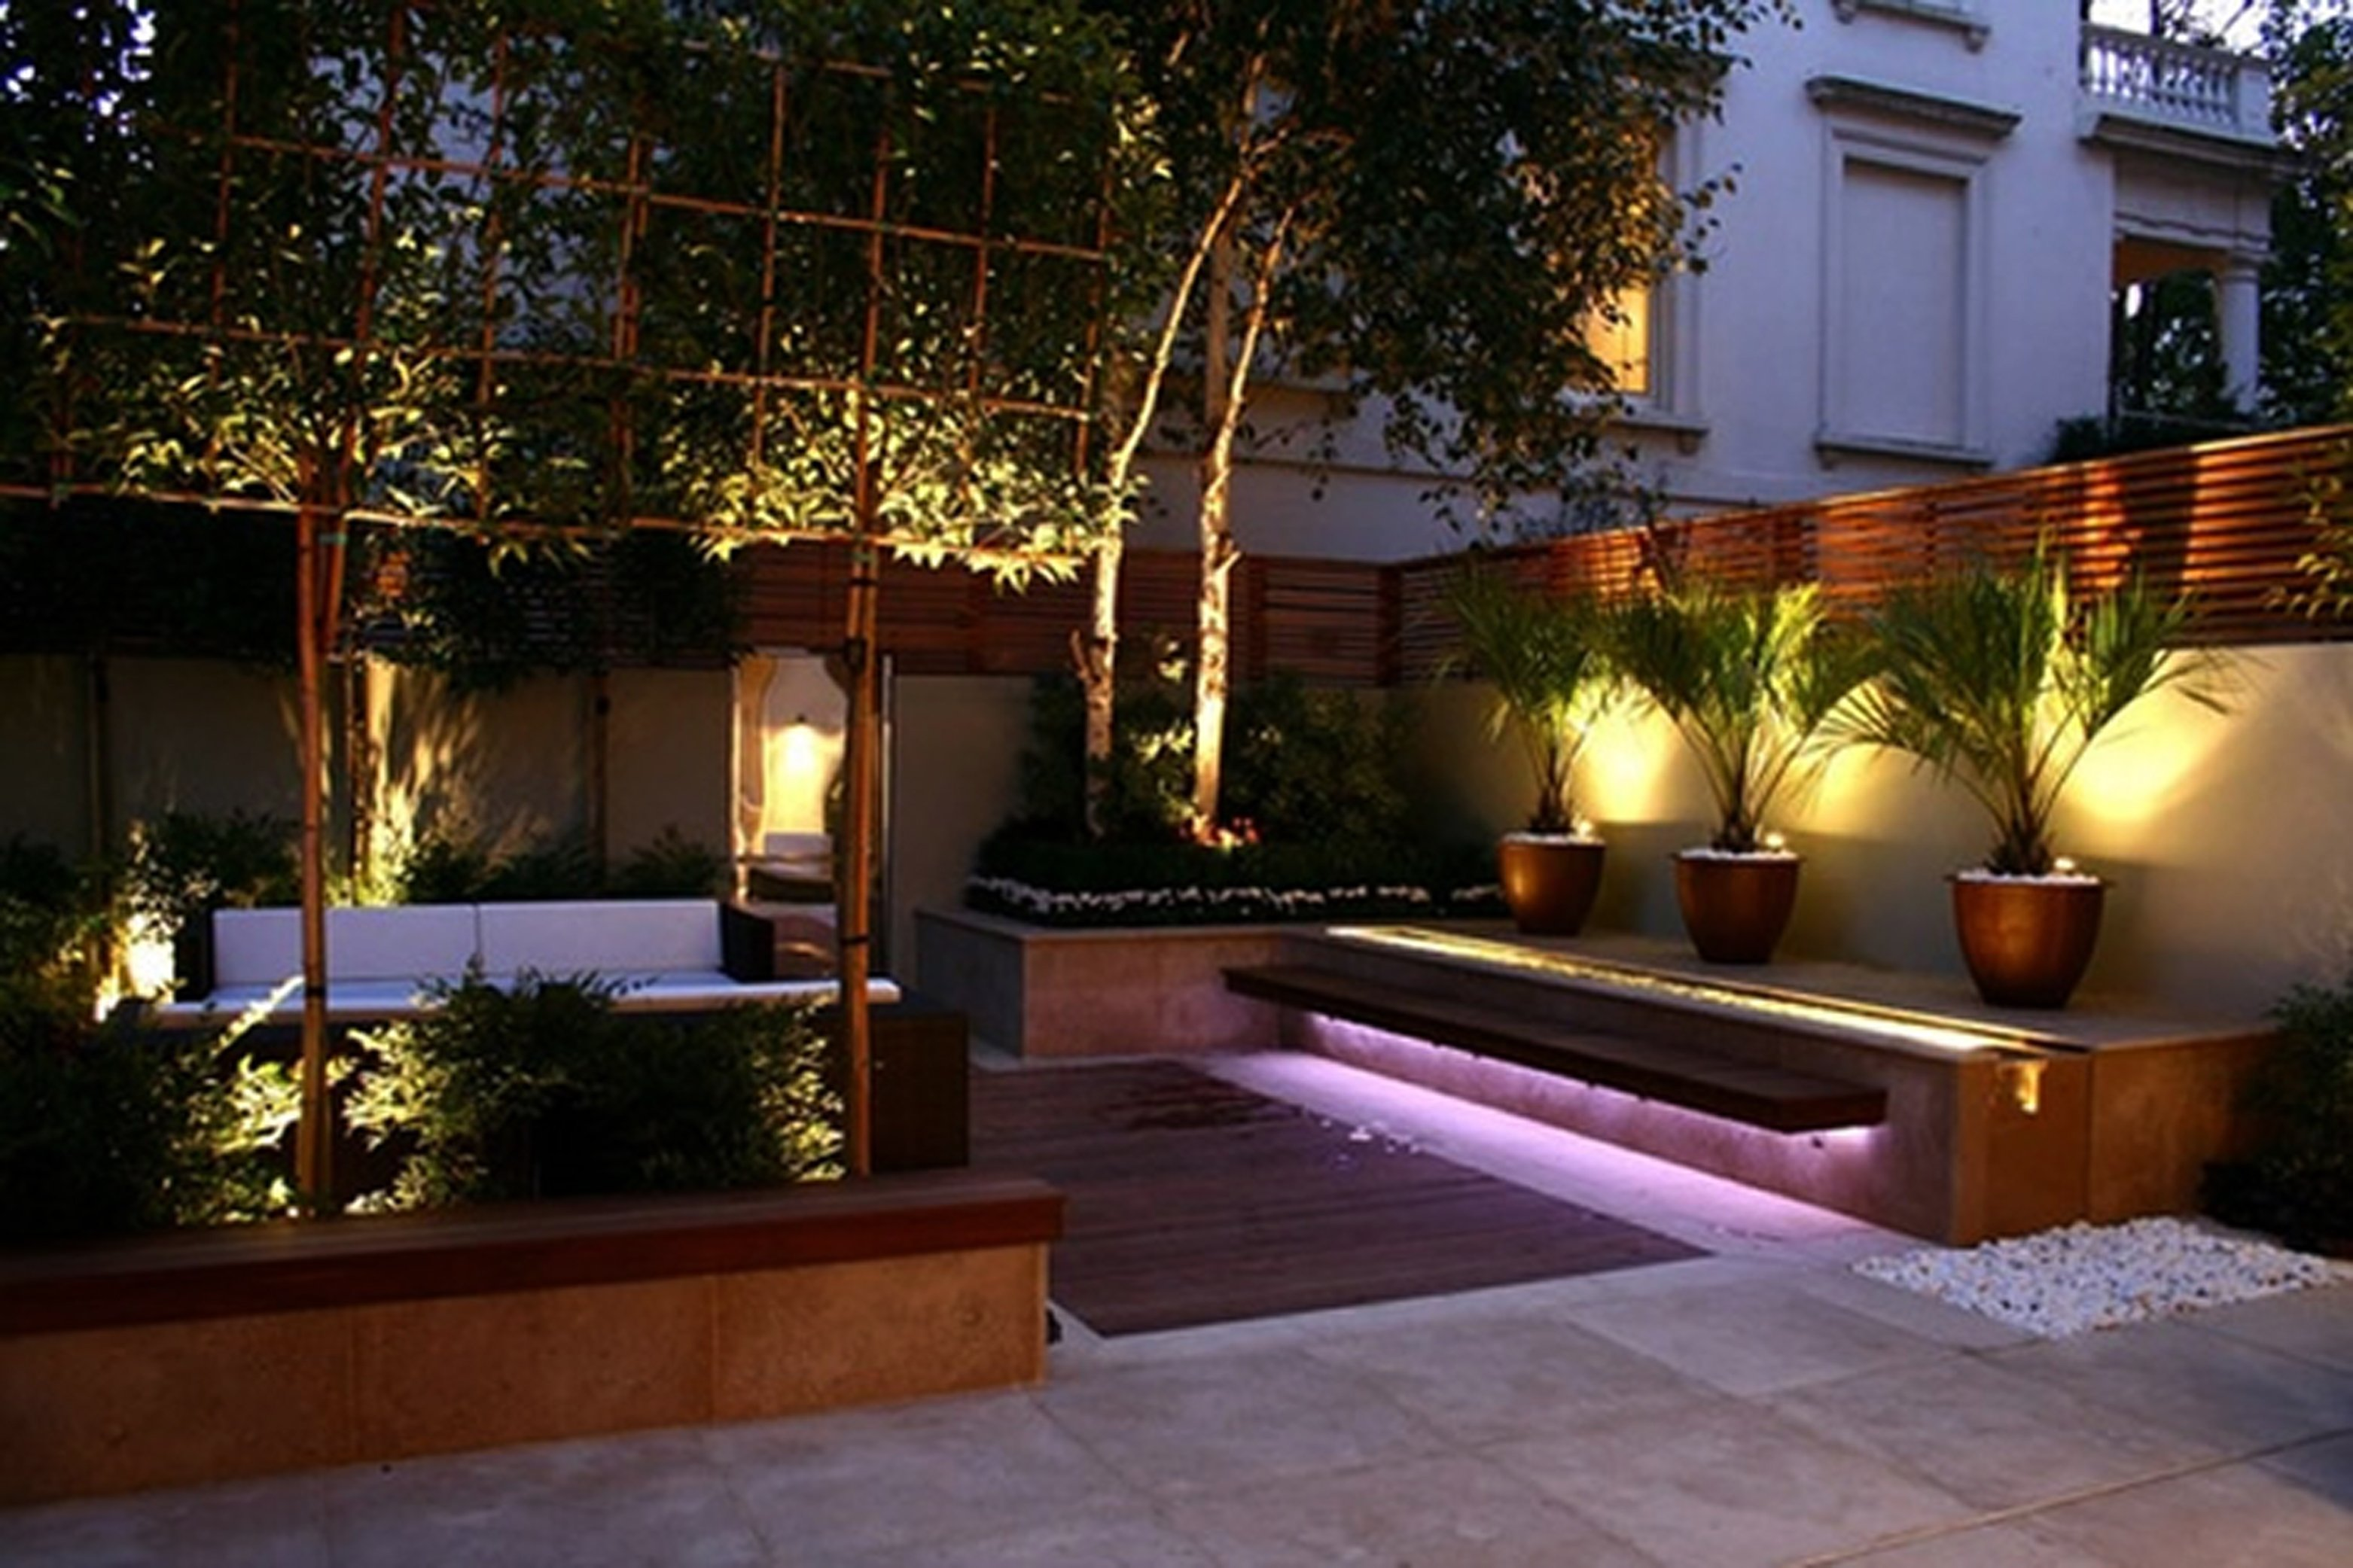 Ideas para decorar exteriores en primavera - Ideas para decorar un porche pequeno ...